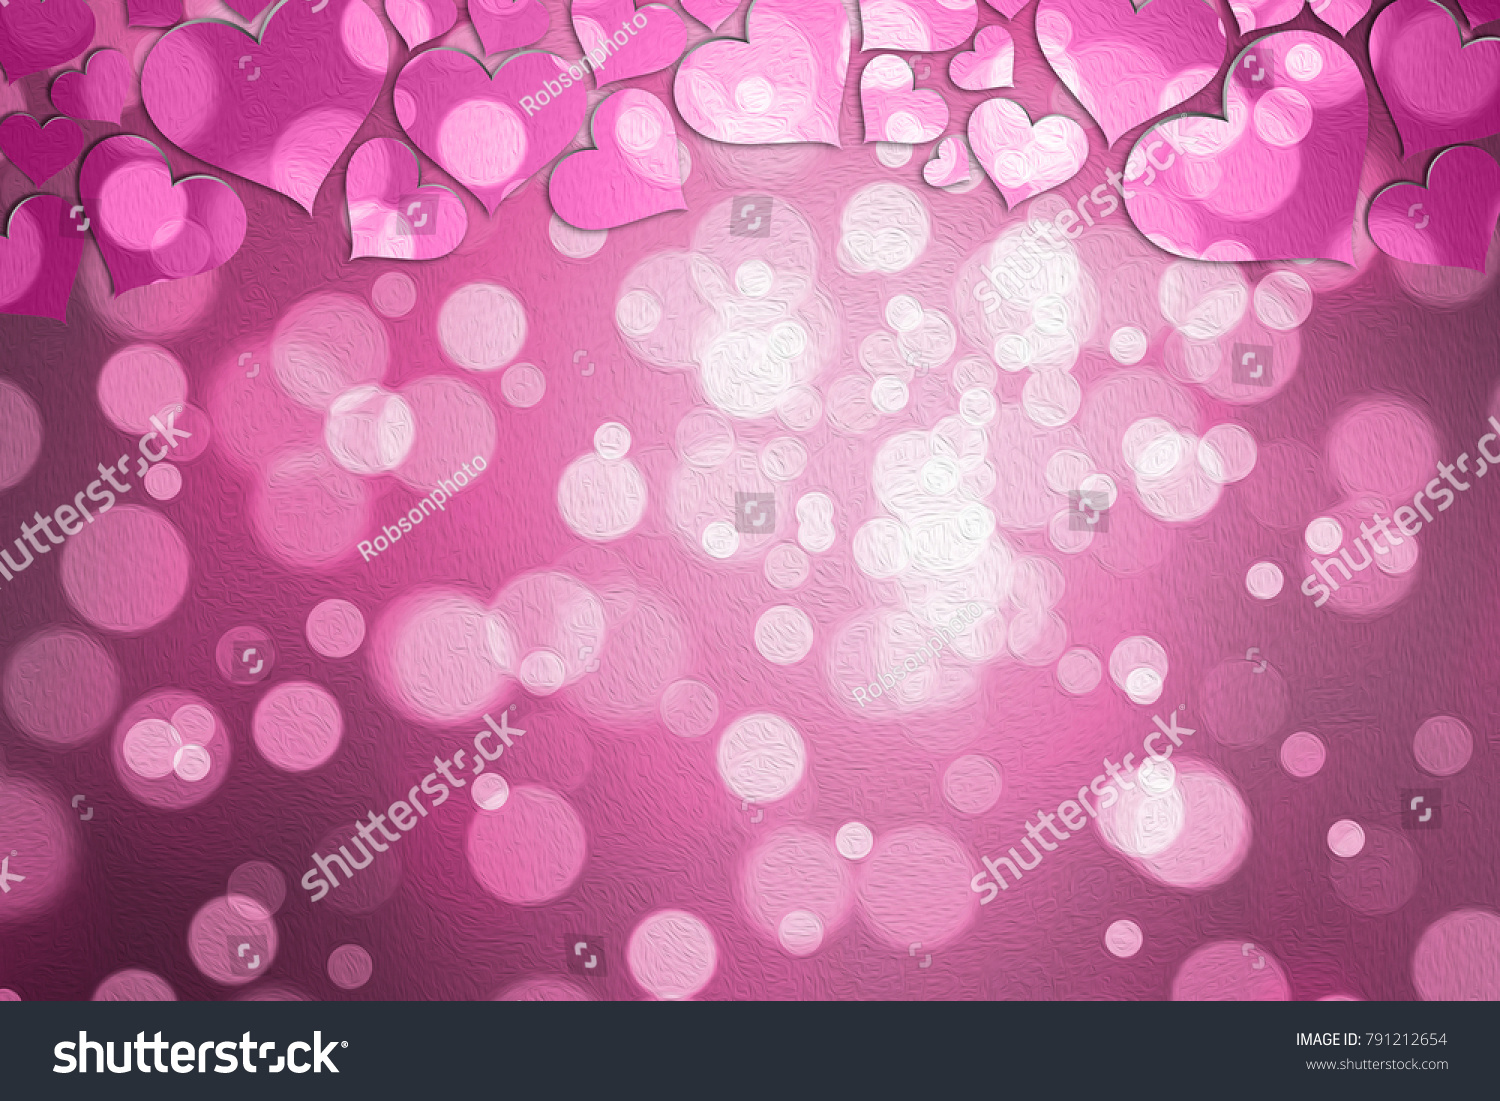 Texting hearts symbols image collections symbol and sign ideas texting hearts symbols gallery symbol and sign ideas texting hearts symbols images symbol and sign ideas biocorpaavc